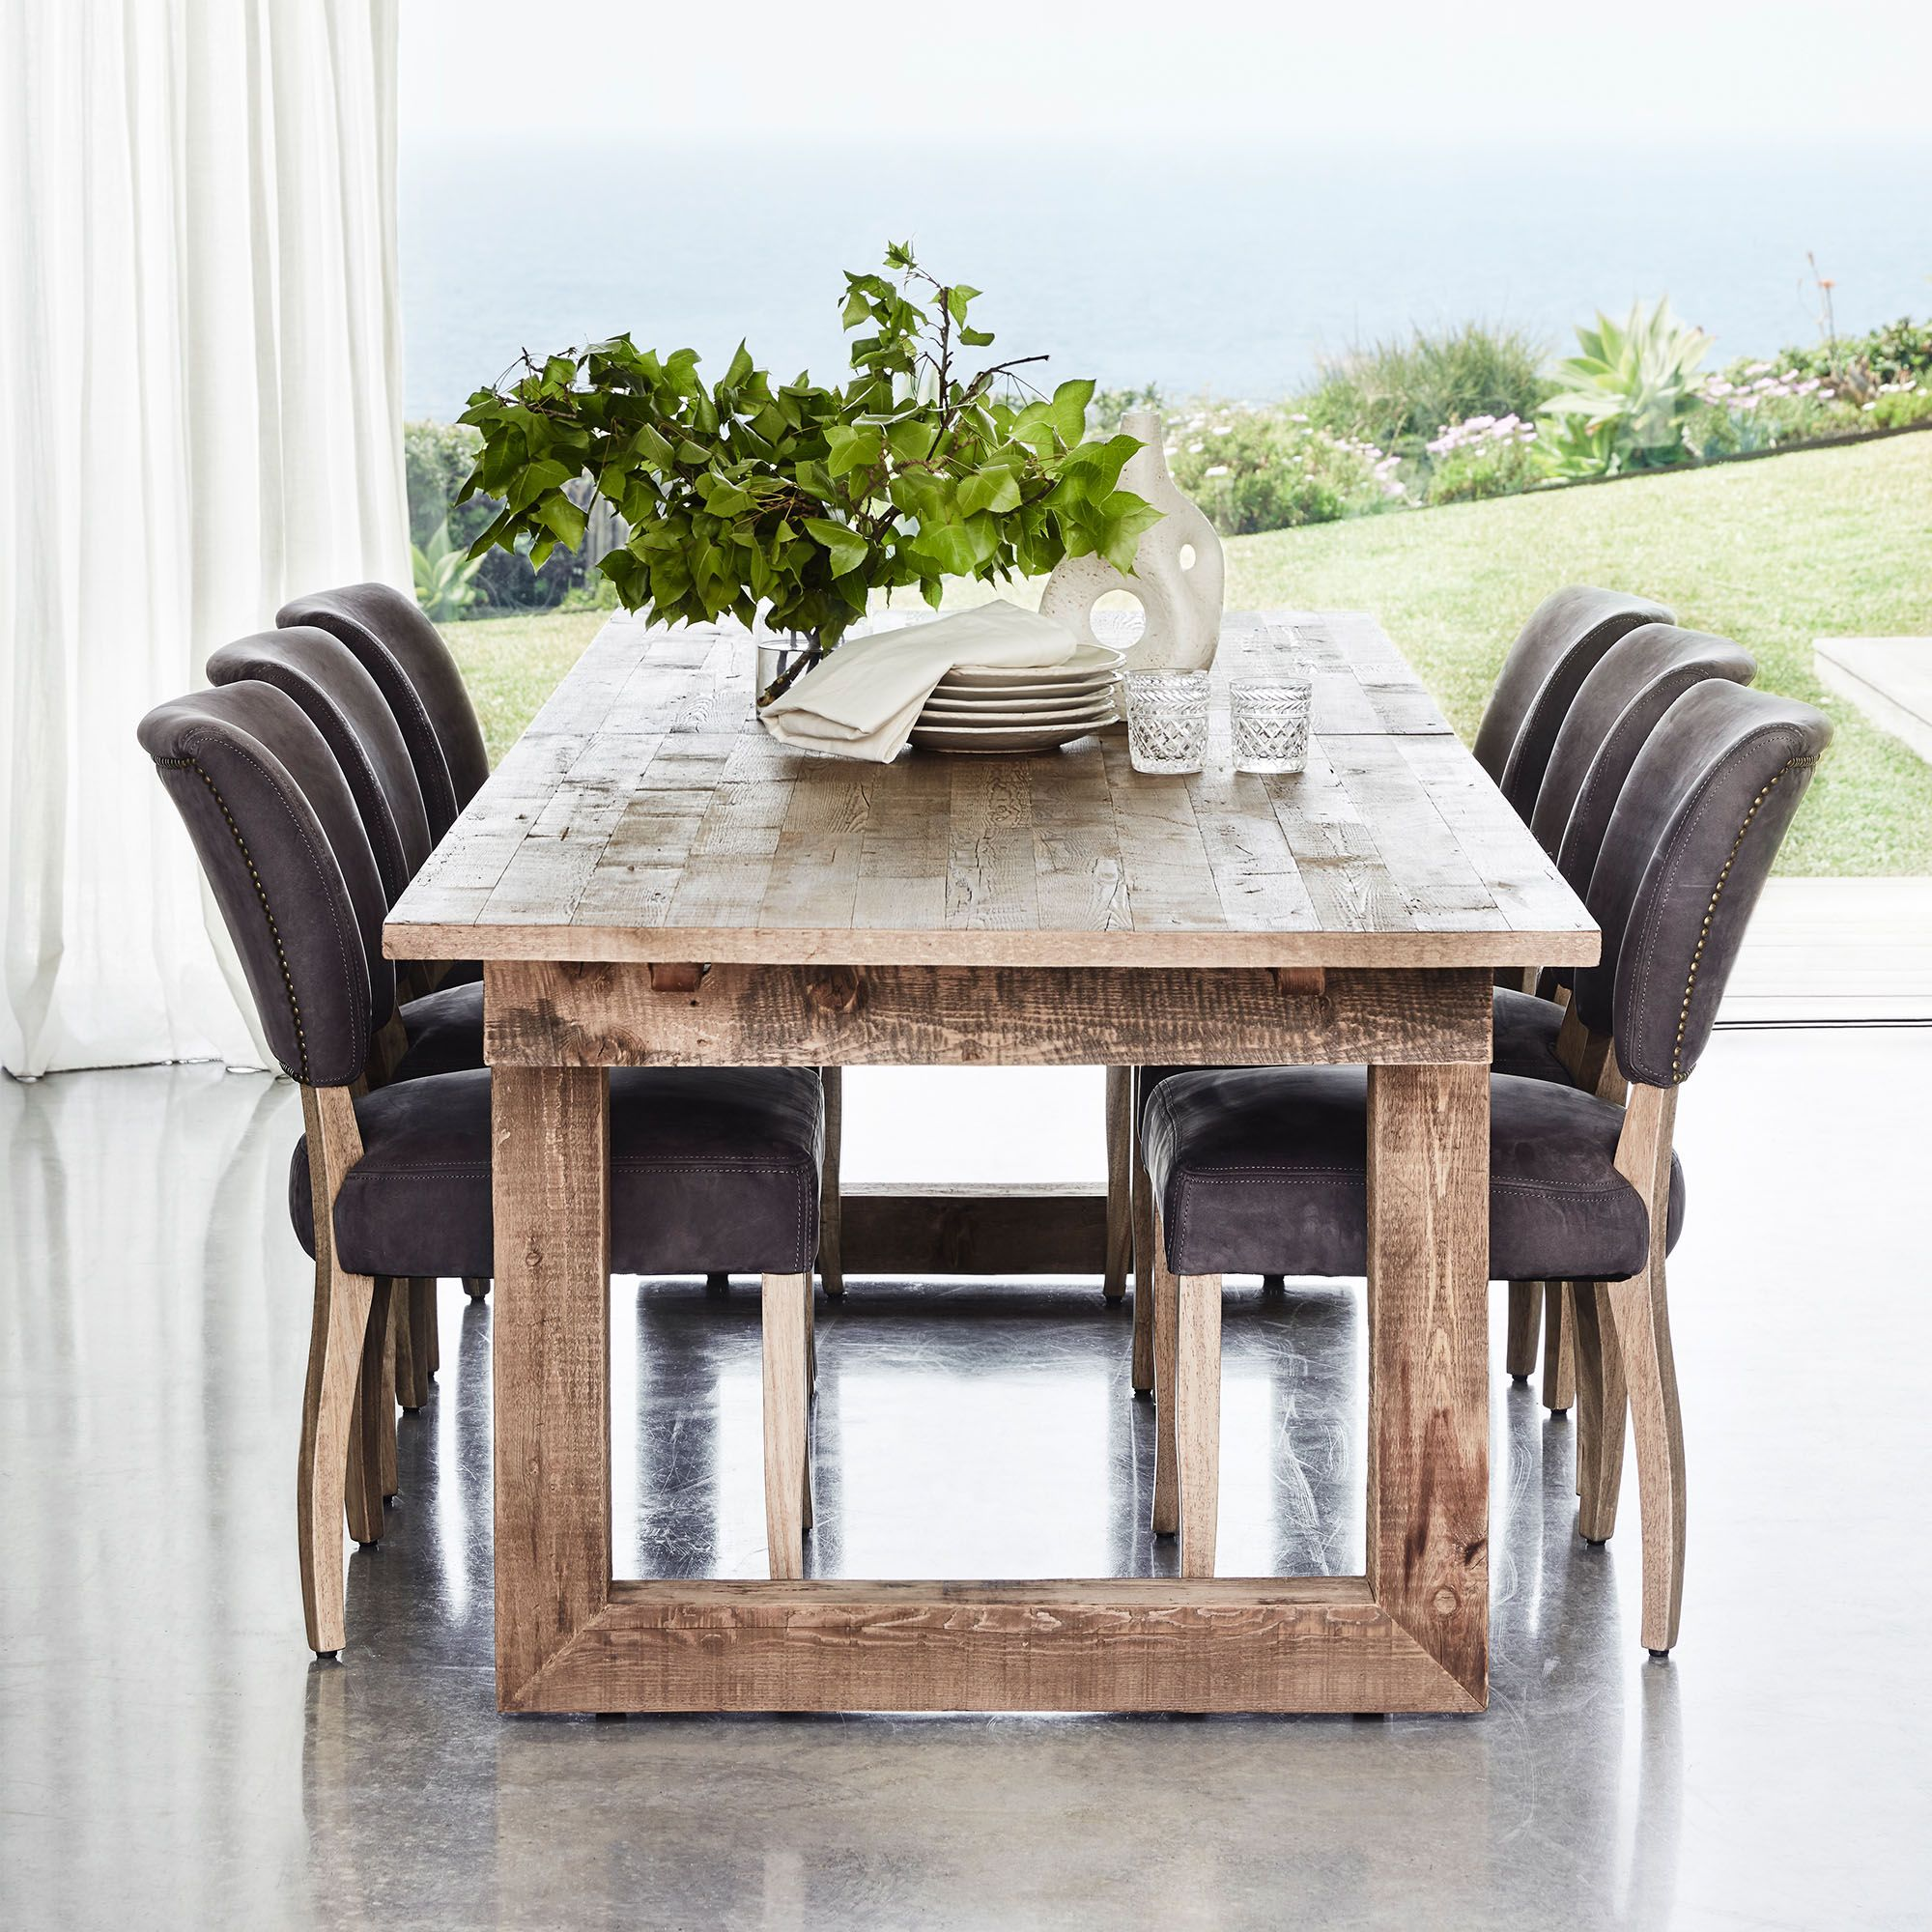 Handcrafted From Genuine English Reclaimed Timber Sourced Old Buildings In The UK Some Up To 100 Years Causeway Dining Table Is Perfect